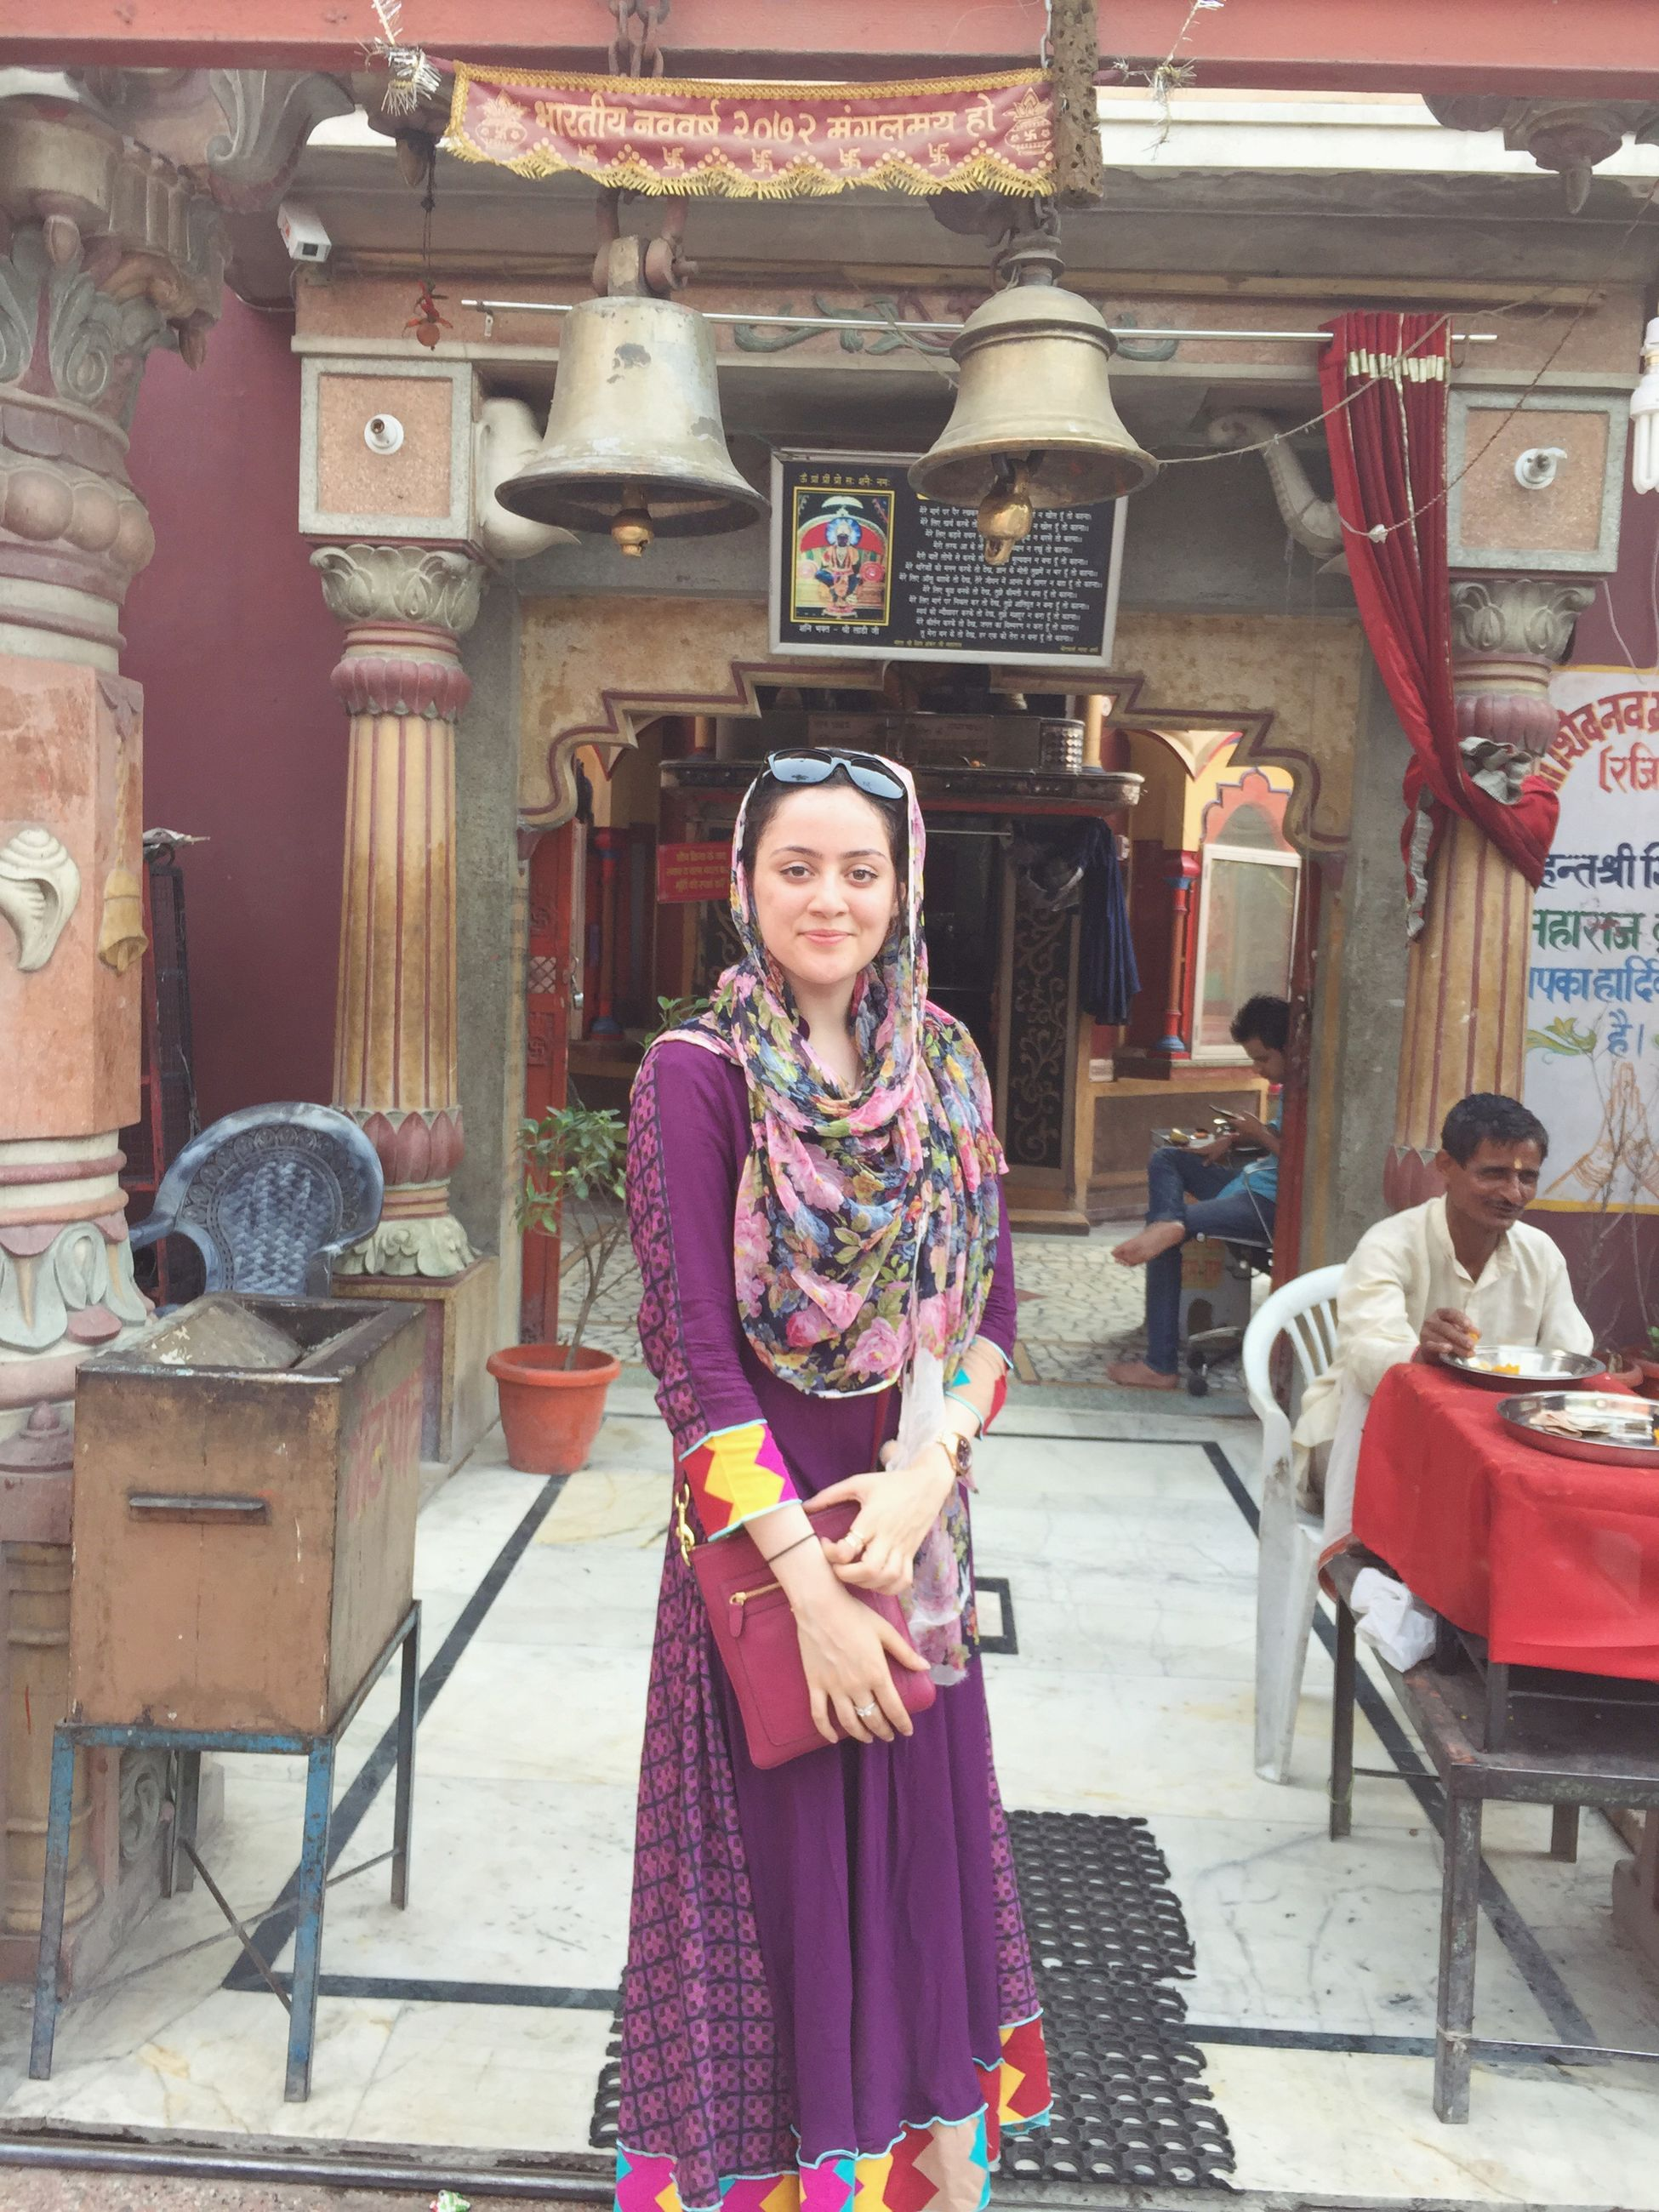 casual clothing, looking at camera, lifestyles, portrait, front view, person, standing, leisure activity, smiling, three quarter length, young adult, happiness, waist up, sitting, red, built structure, traditional clothing